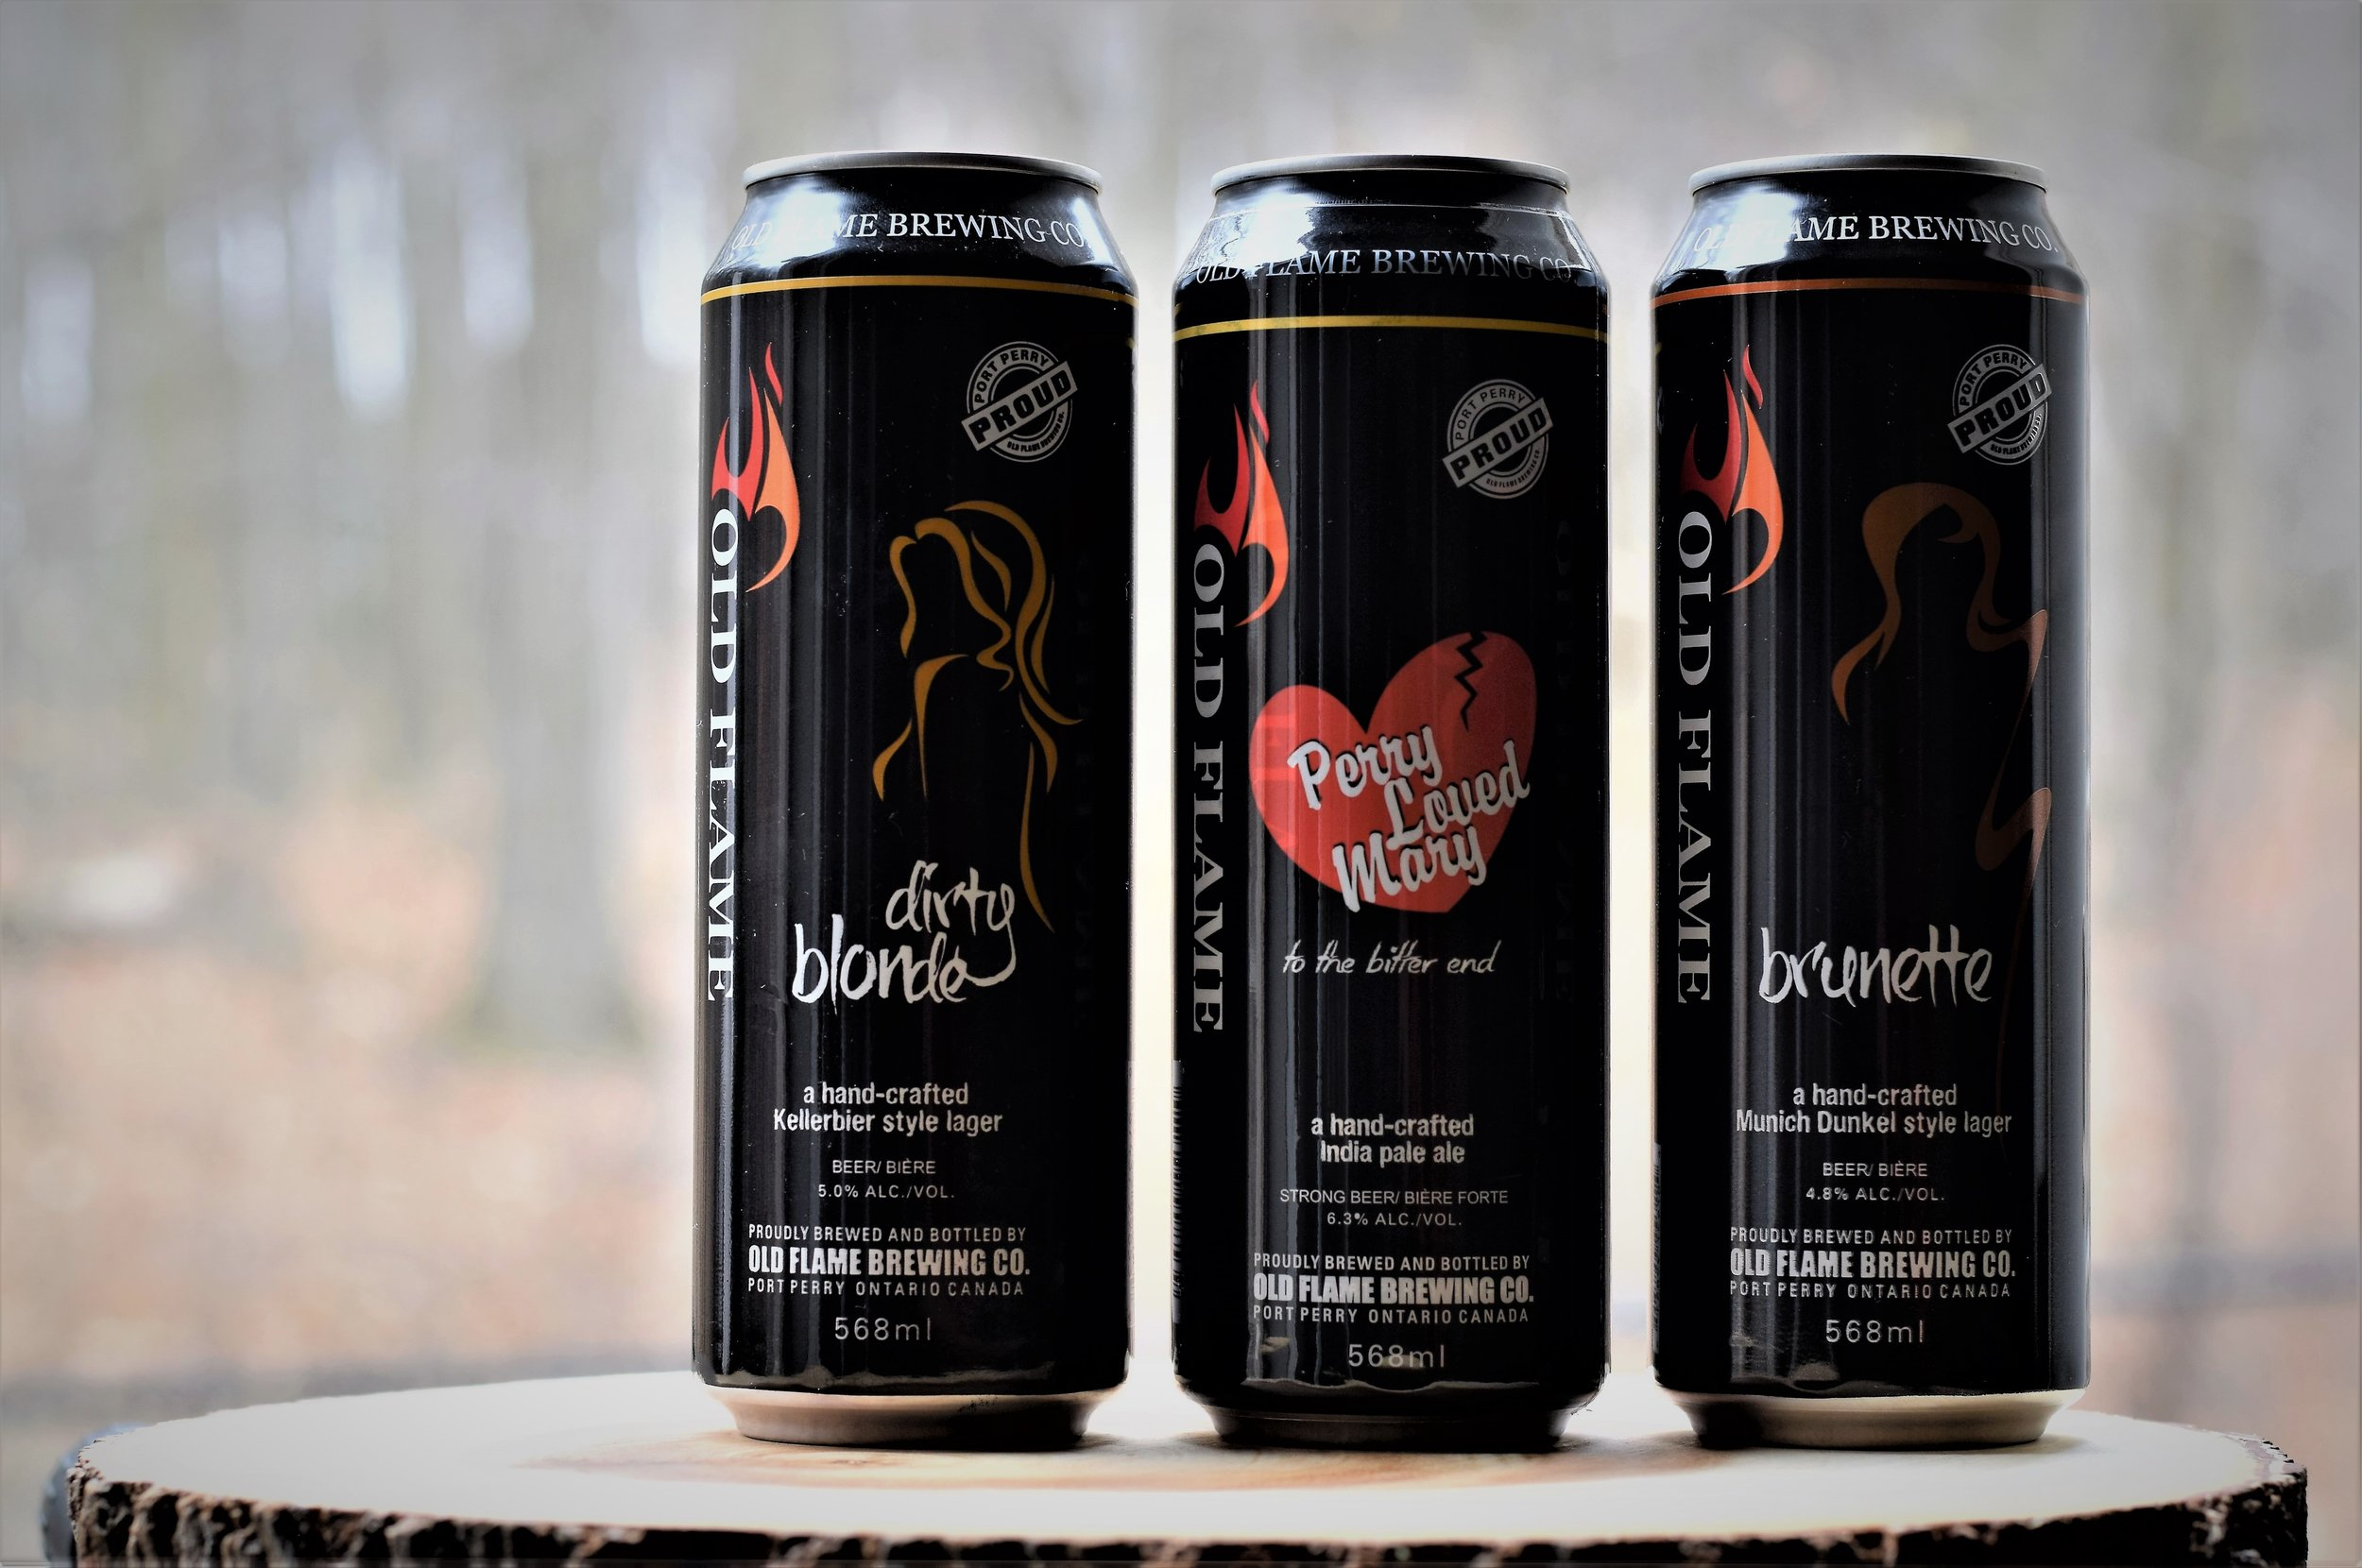 """All cans in the photo are 568ml. From left to right, """"Dirty Blonde"""", """"Perry Loved Mary"""", """"Brunette."""""""